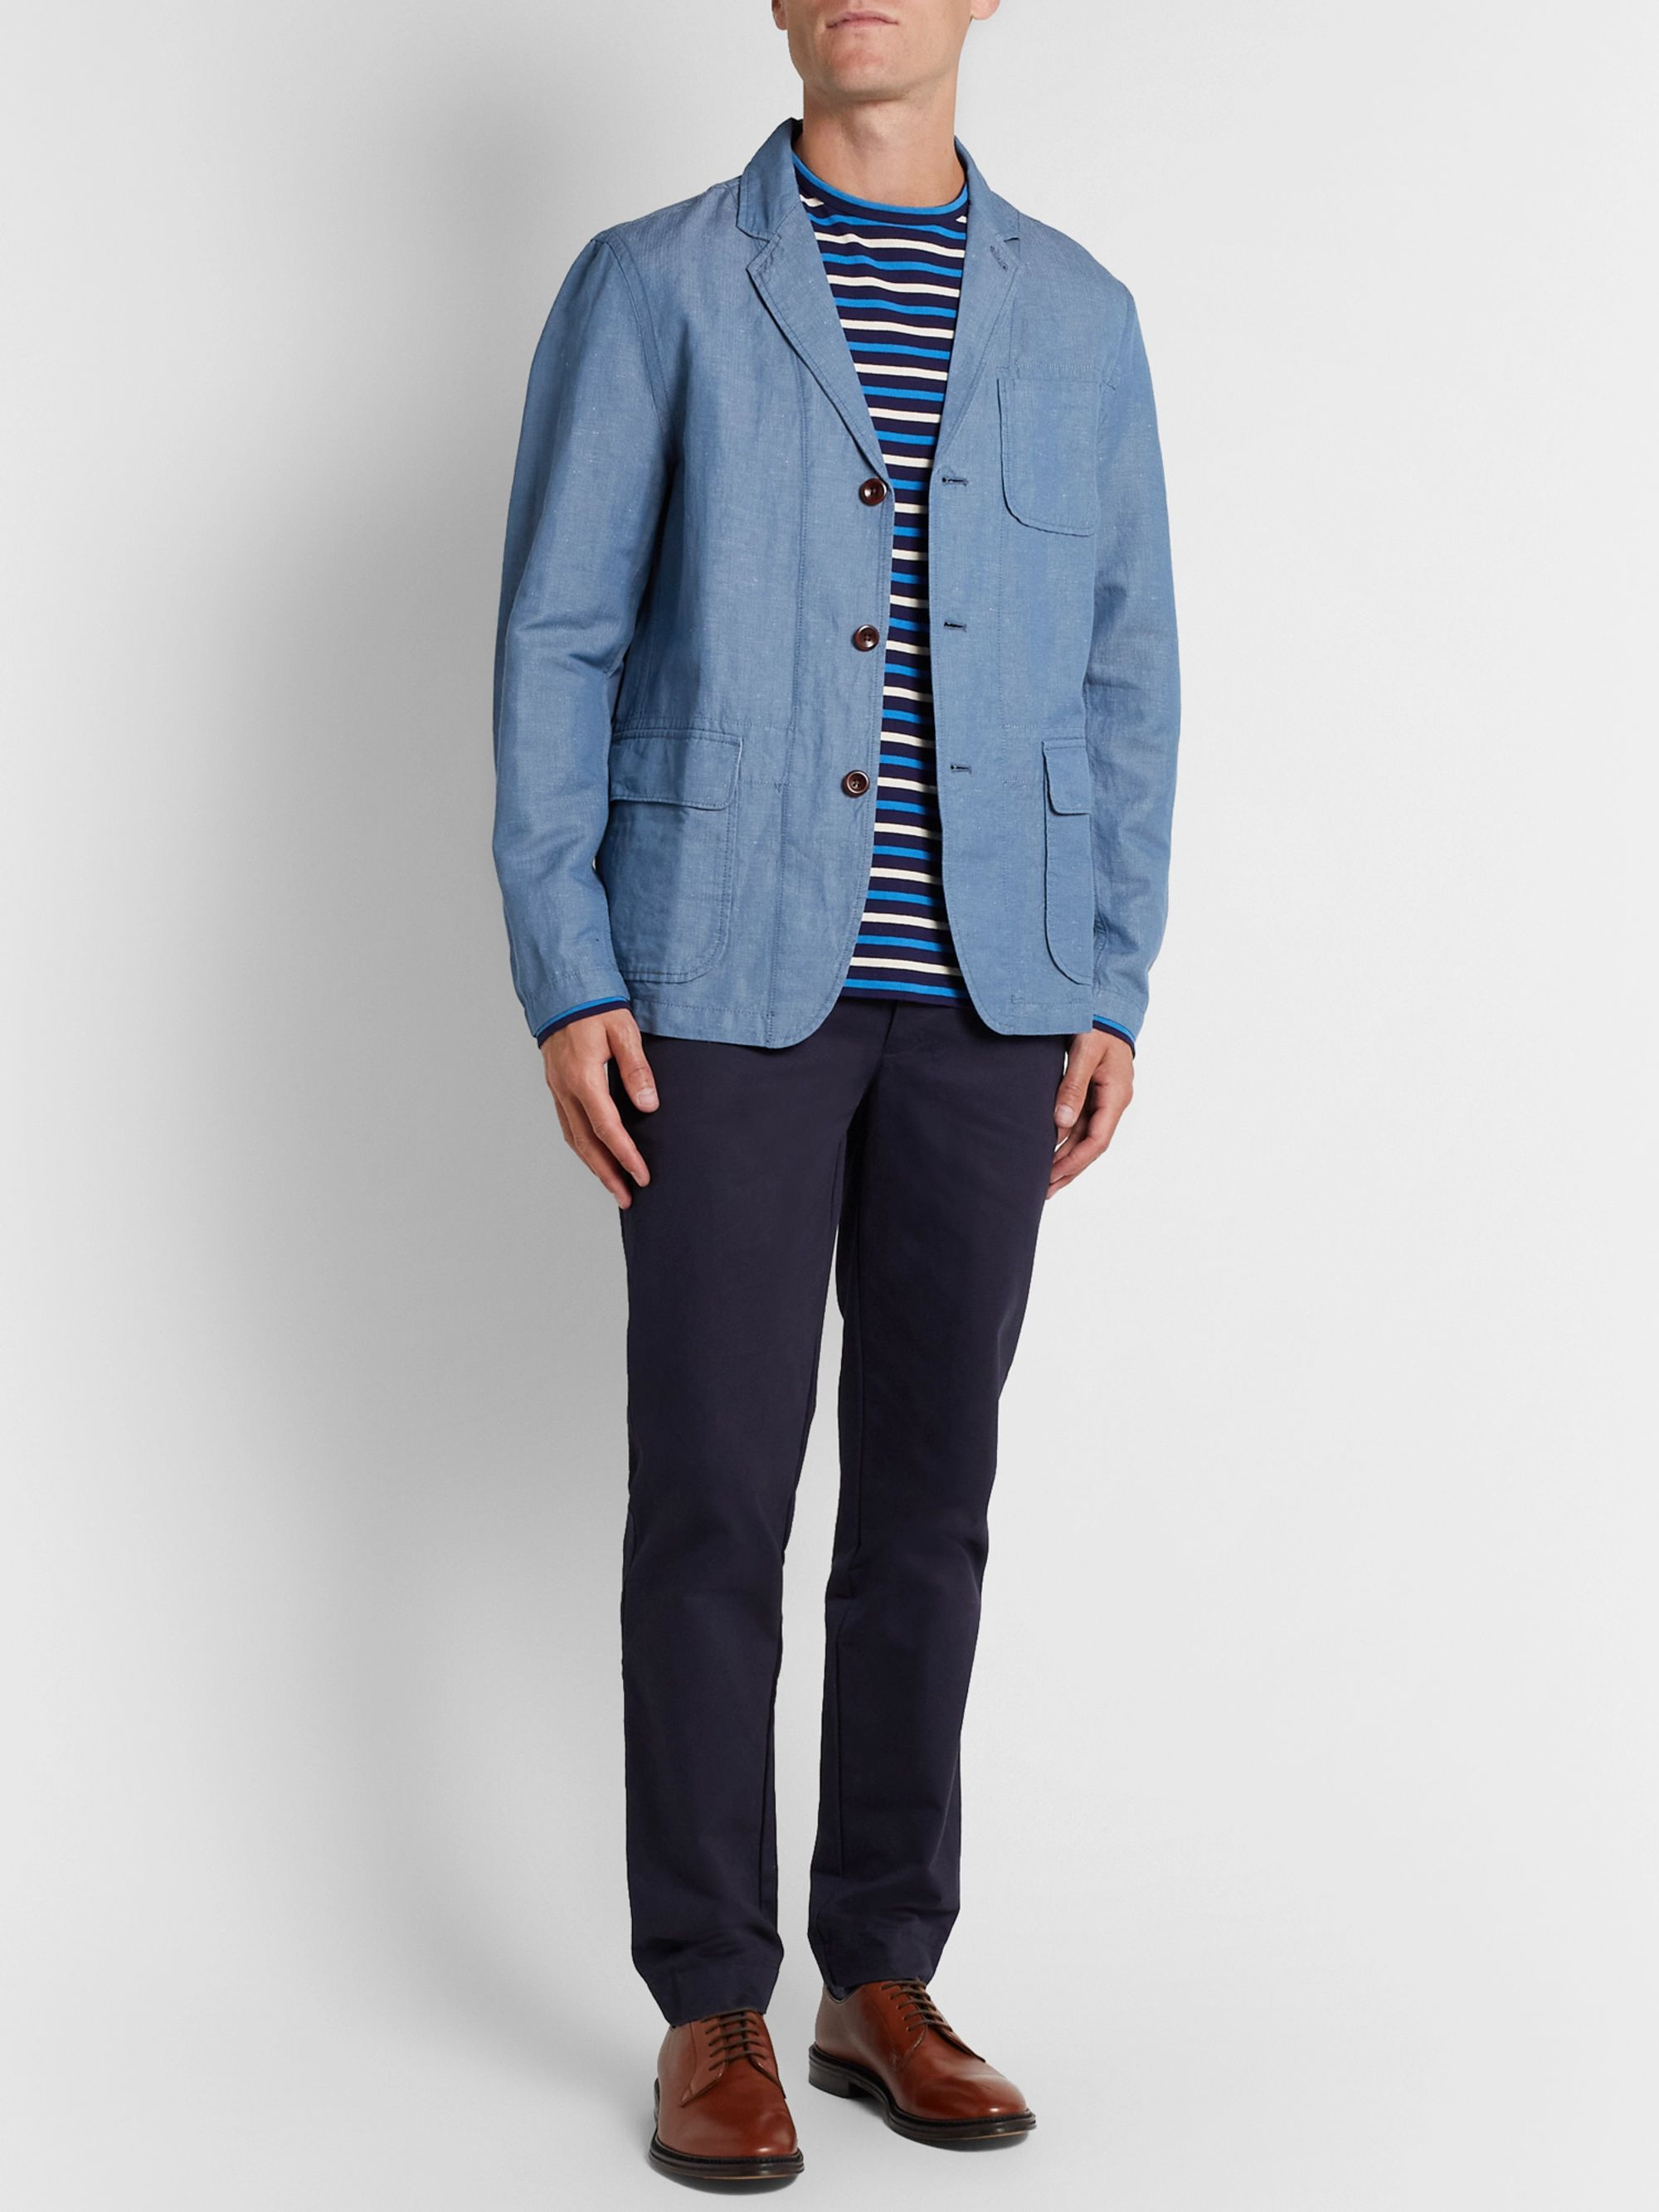 Alex Mill Unstructured Herringbone Linen and Cotton-Blend Chambray Blazer